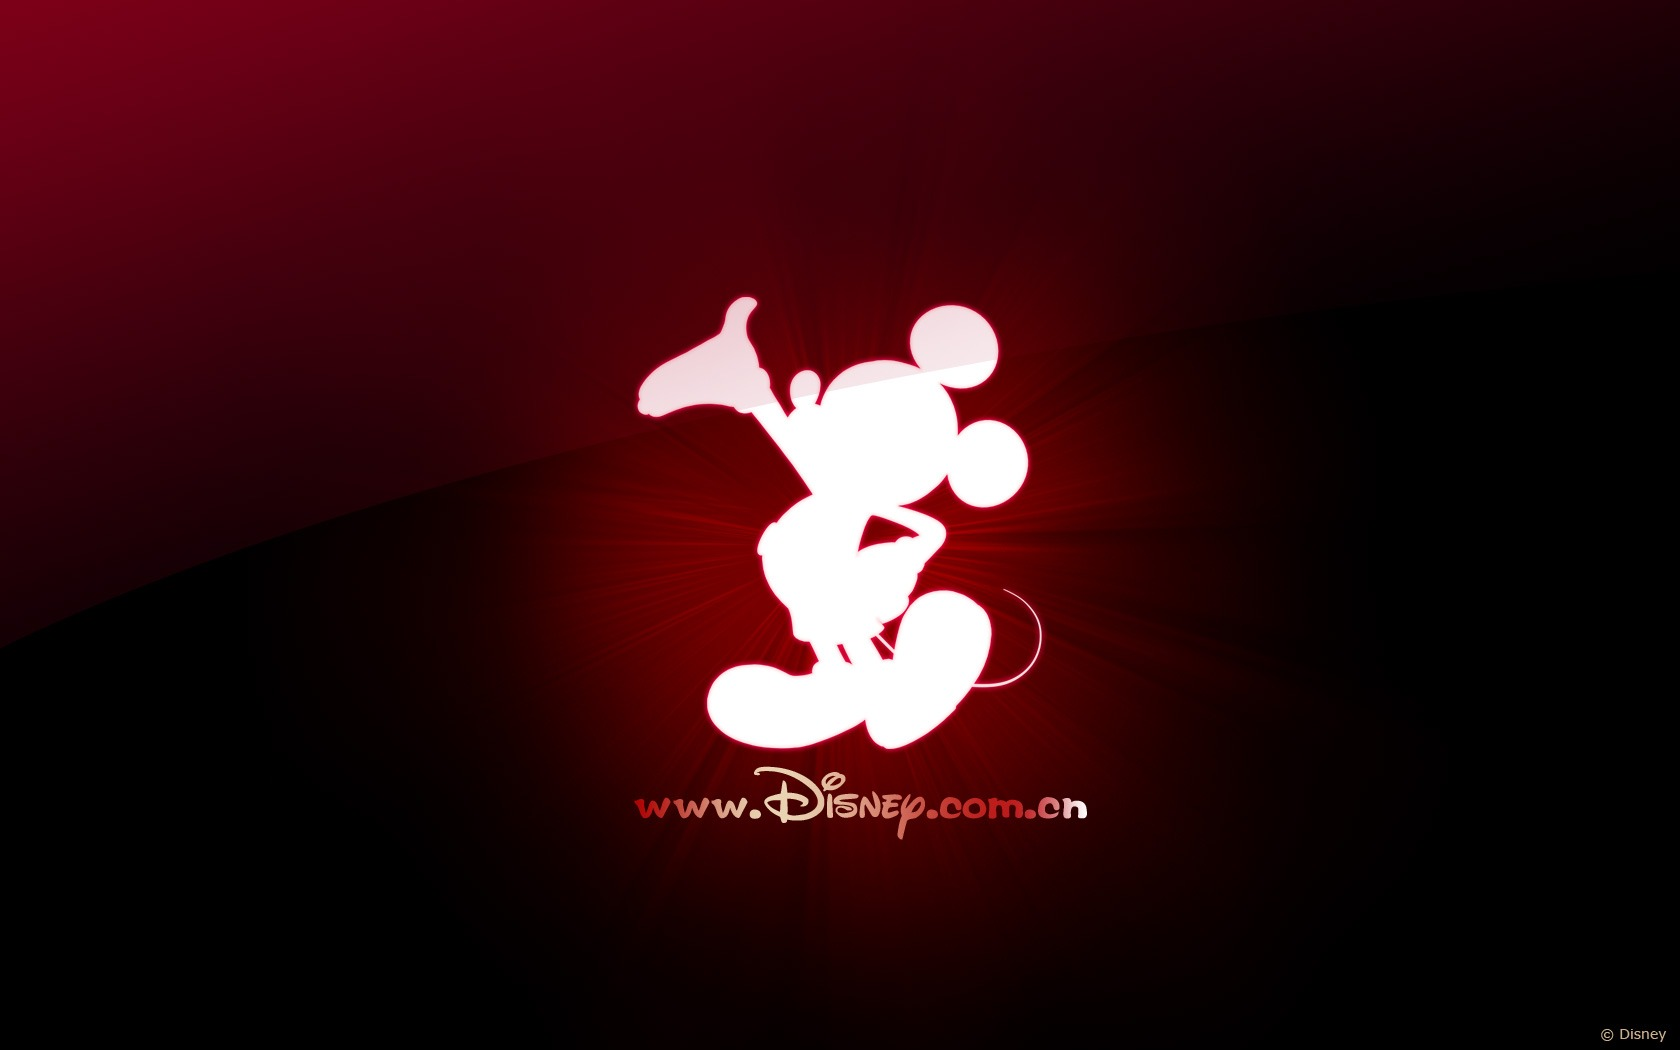 Mickey y sus amigos fondos de pantalla wallpapers - Mickey mouse hd wallpaper 1366x768 ...